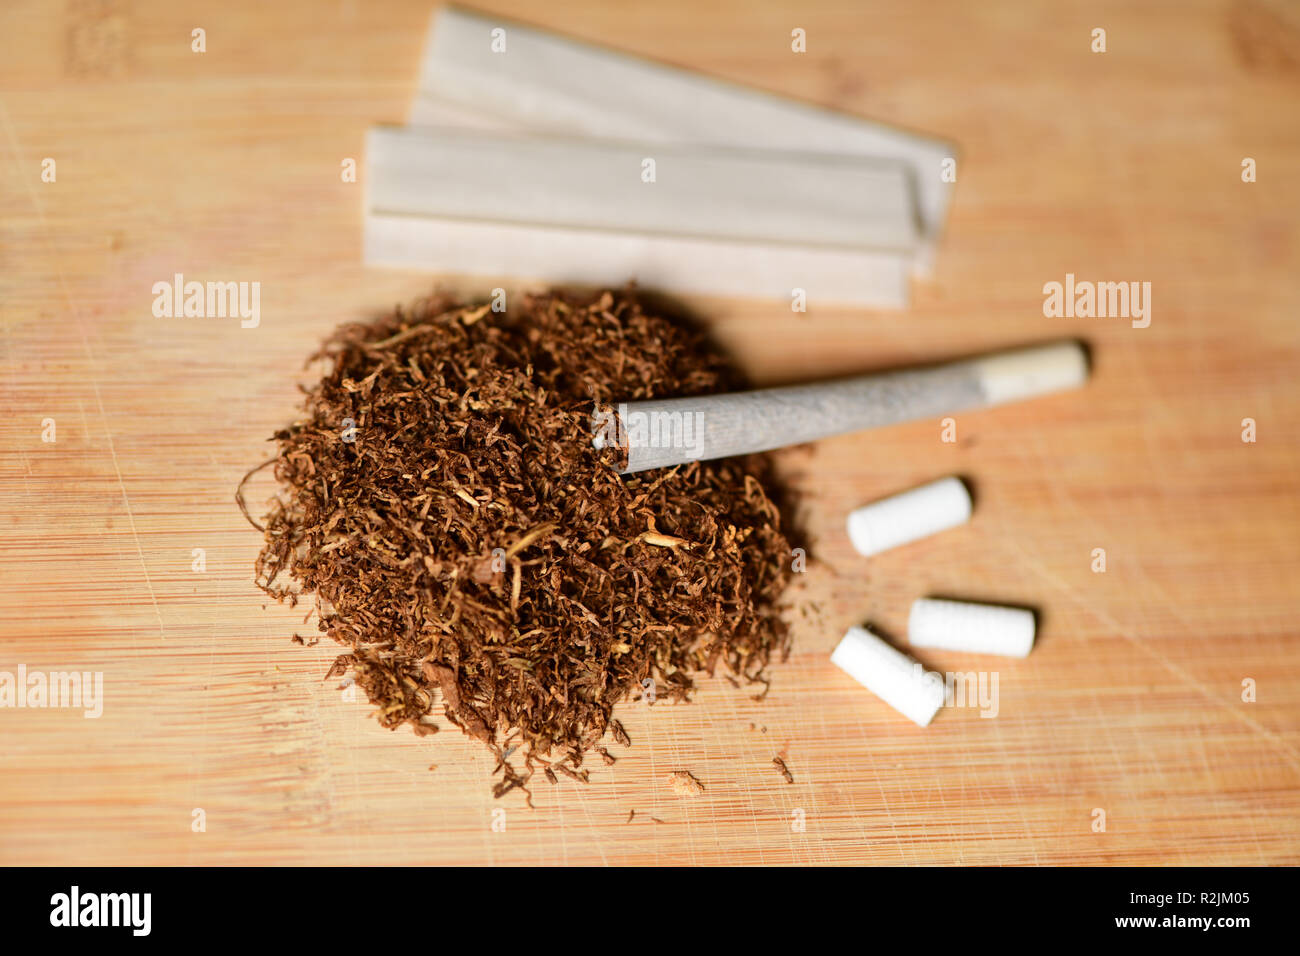 Hand Rolling Cigarette Tobacco Stock Photos & Hand Rolling